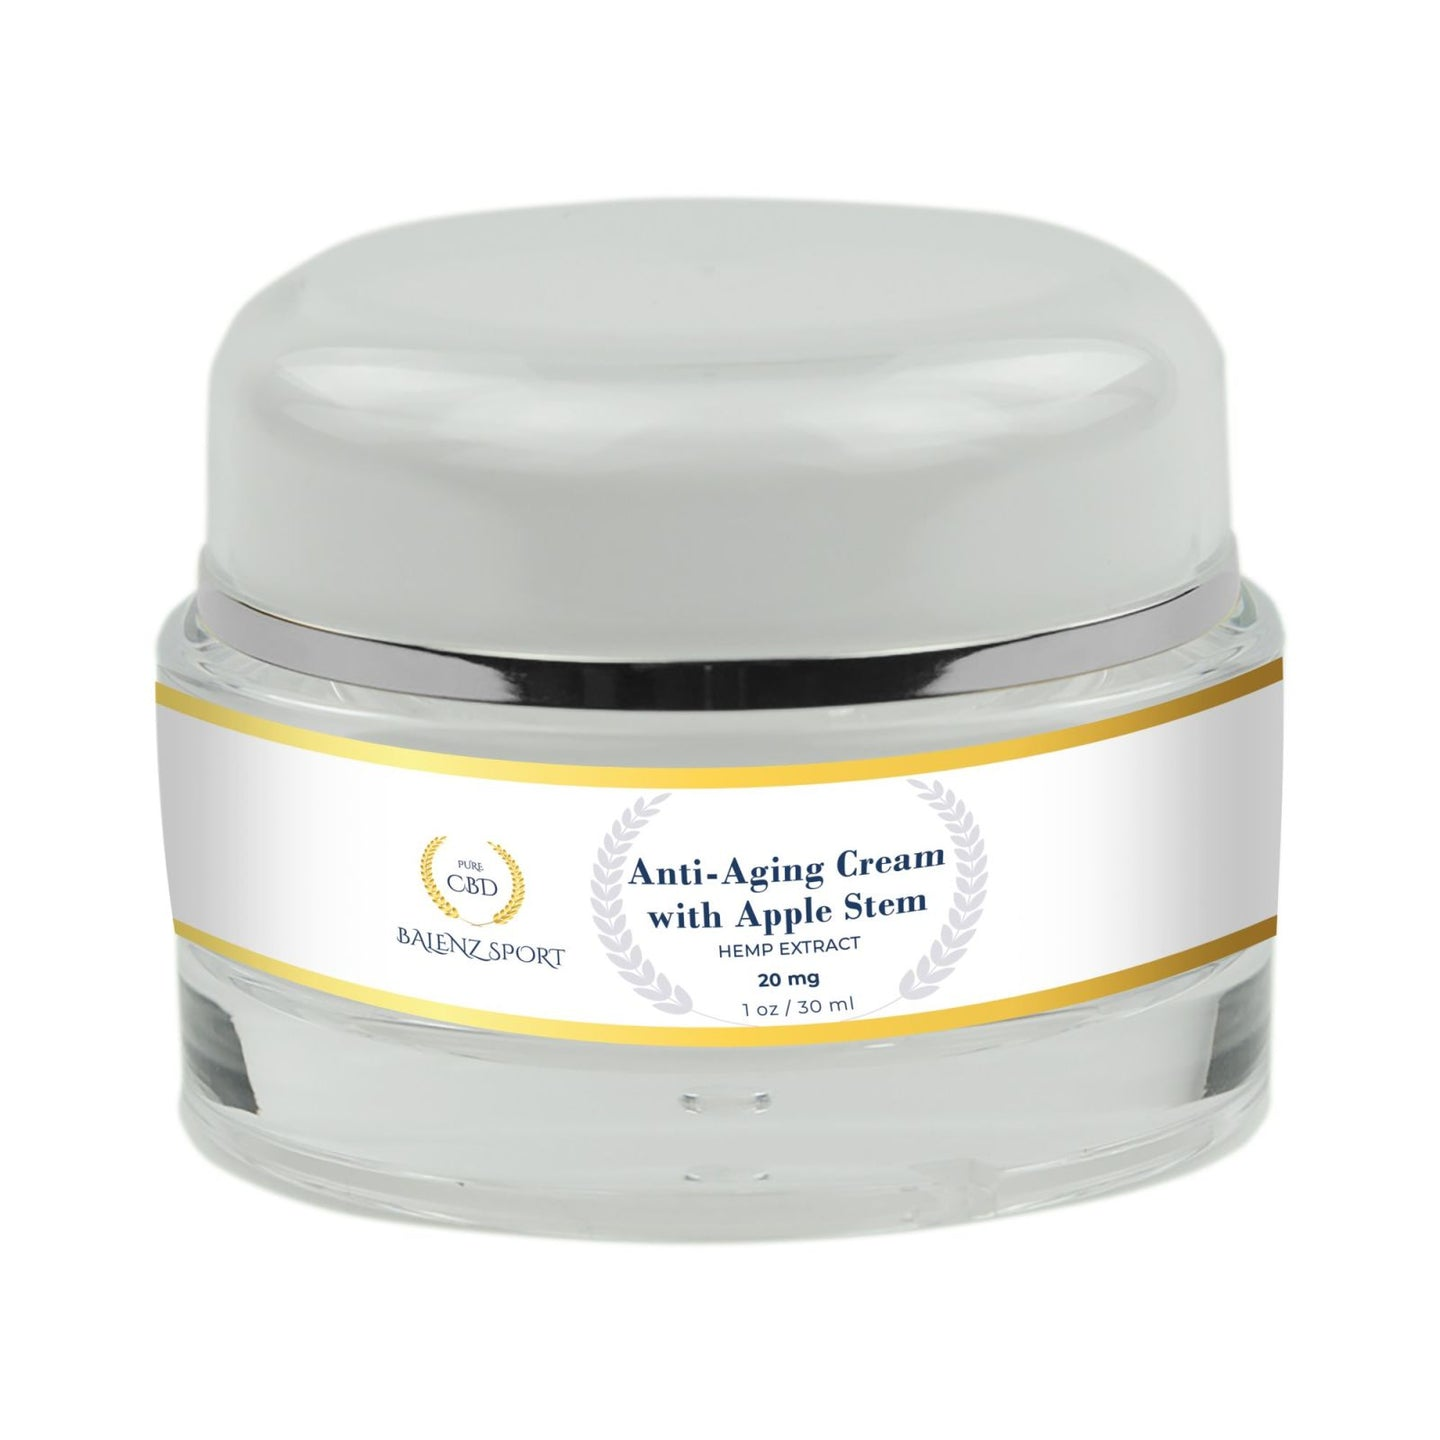 ANTI-AGING CREAM WITH APPLE STEM 20MG